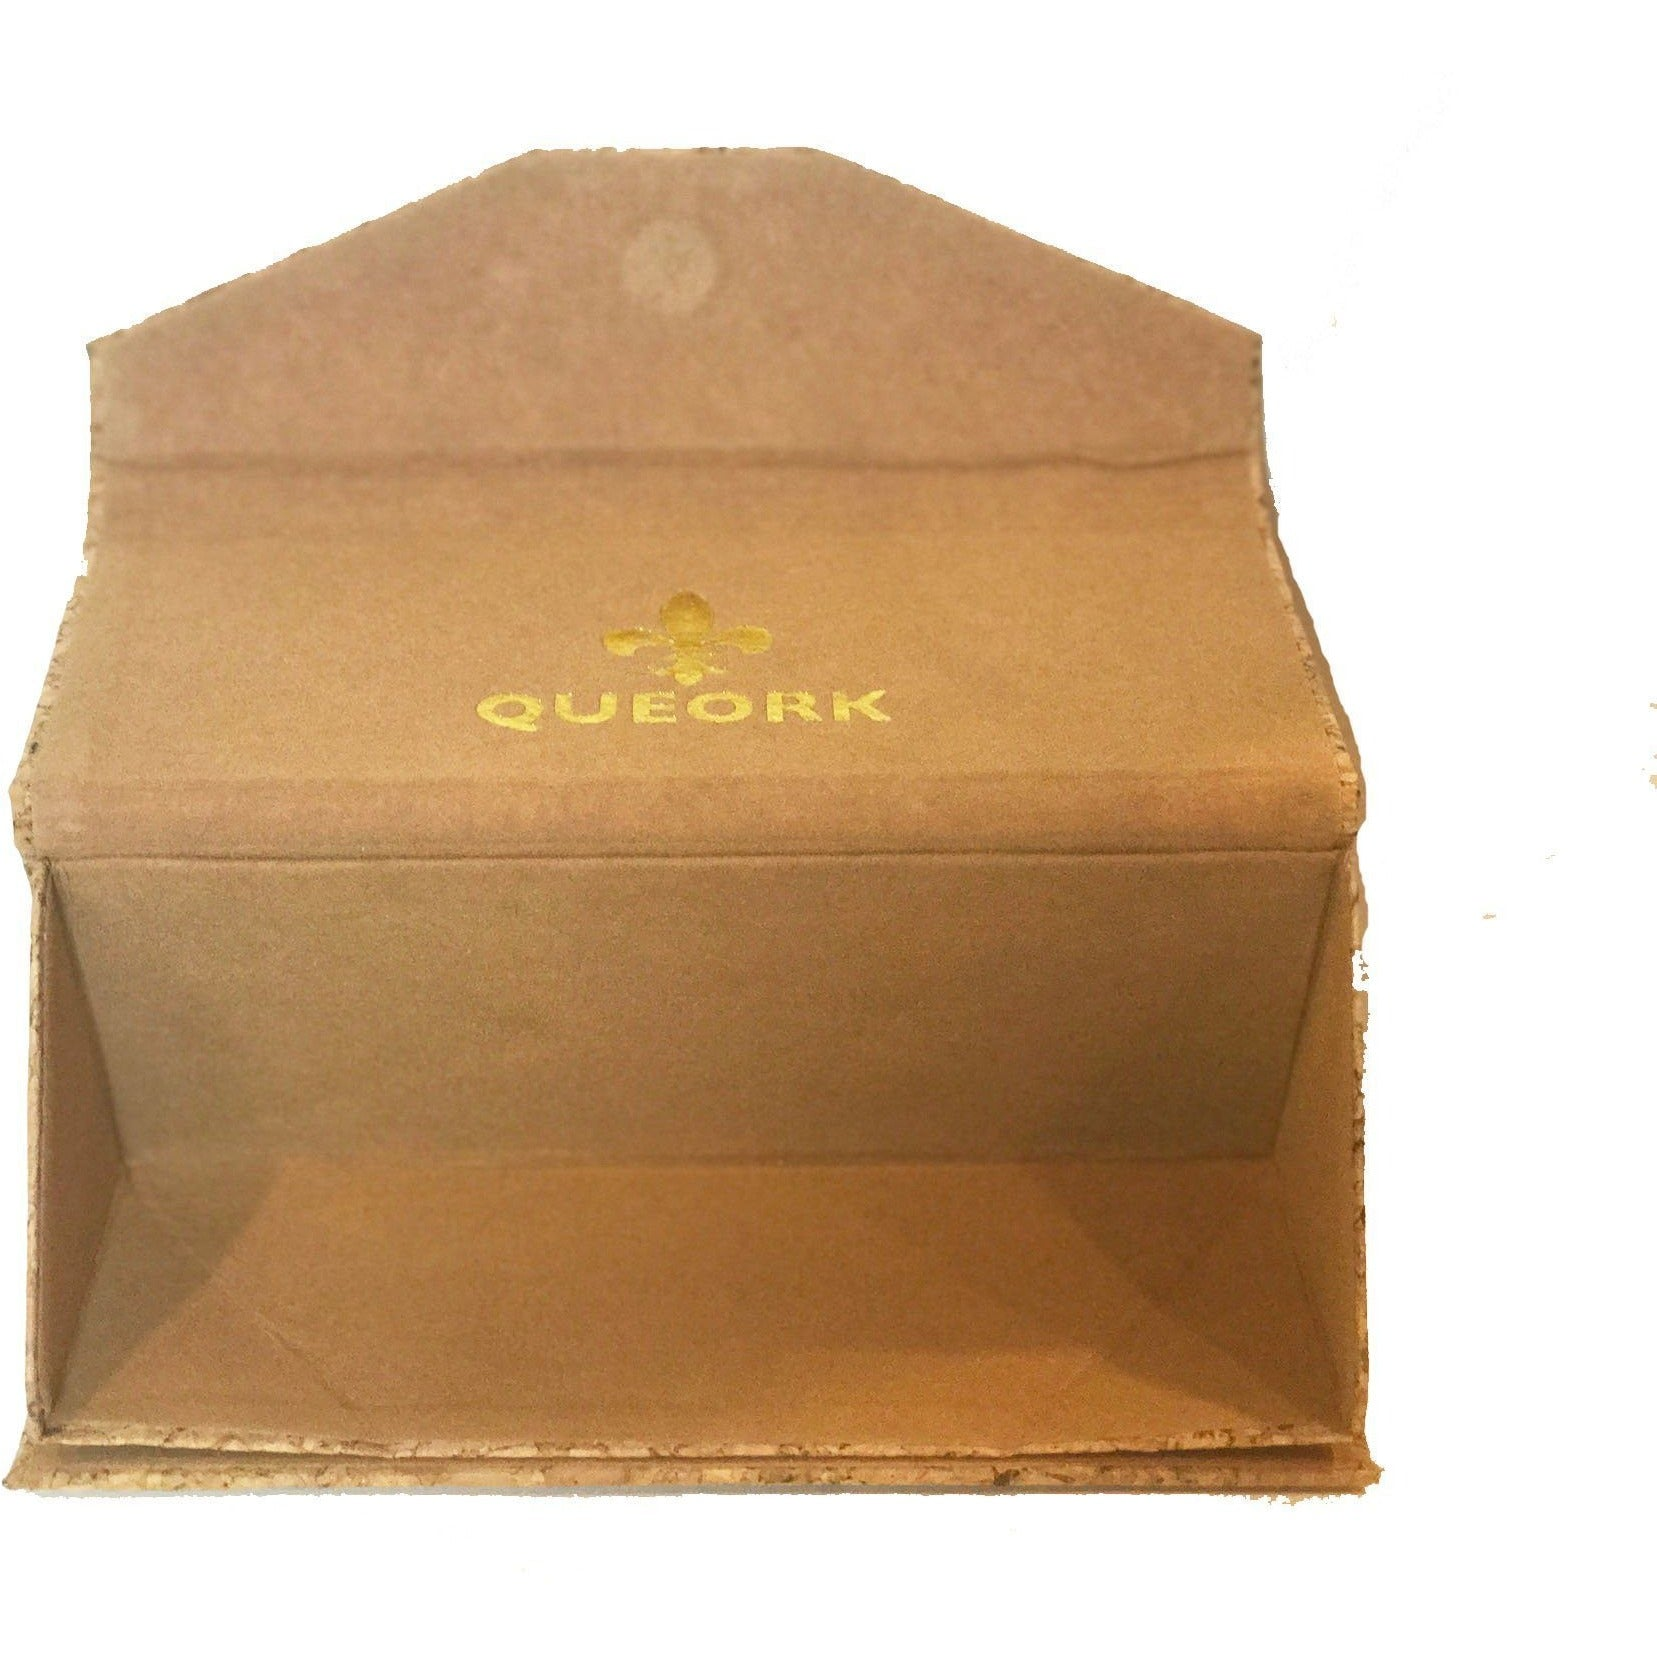 queork cork collapsible glasses case